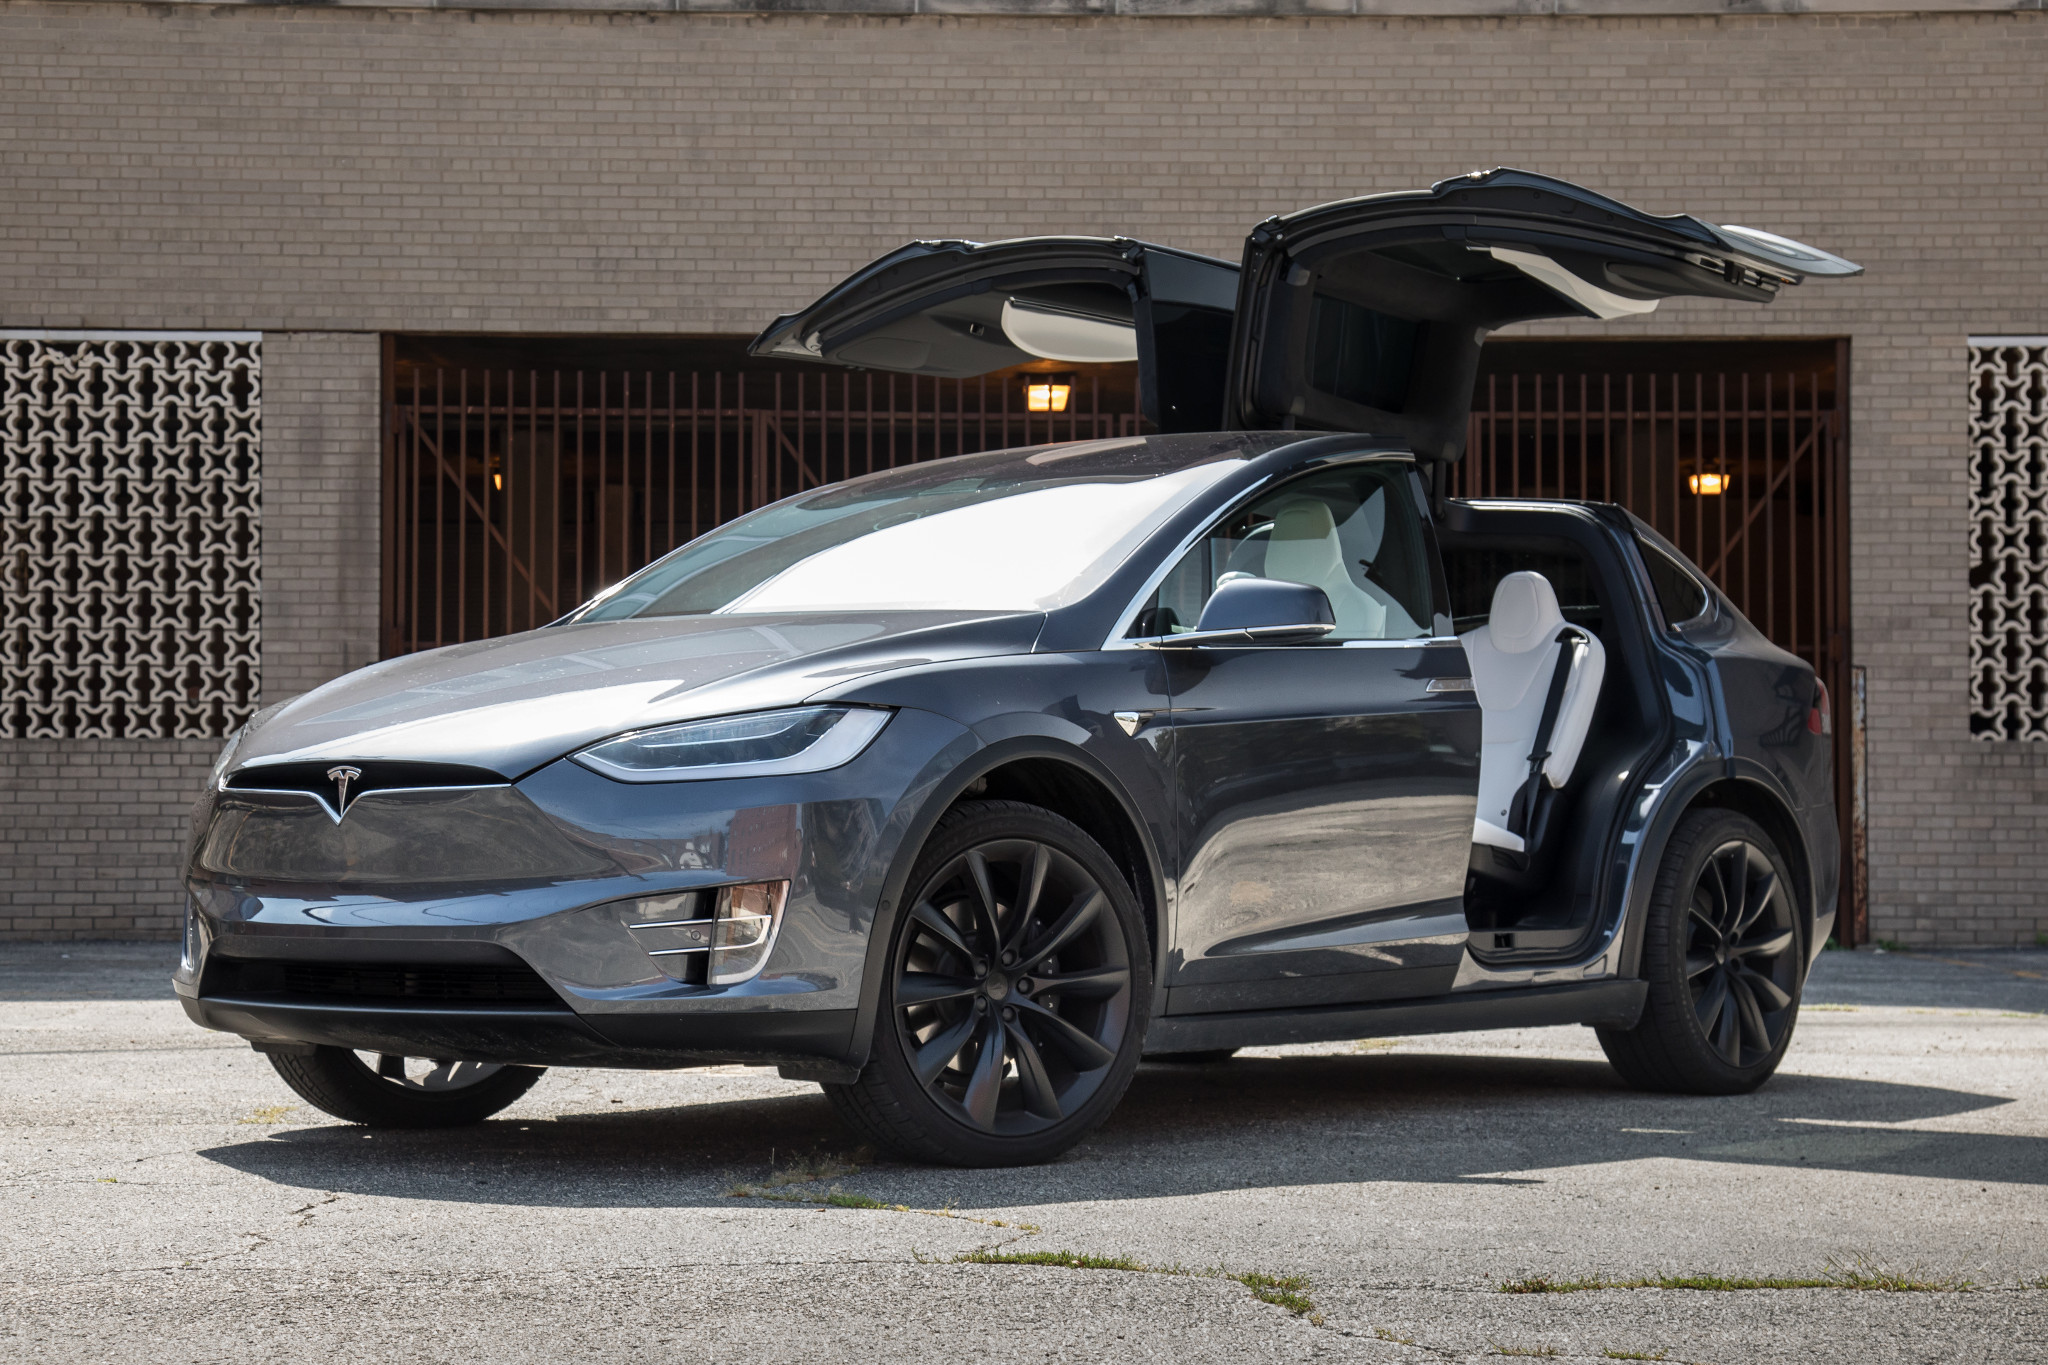 The Week in Tesla News: Model S and Model X Range Boost, Tesla Cybertruck Competitor to Come and More